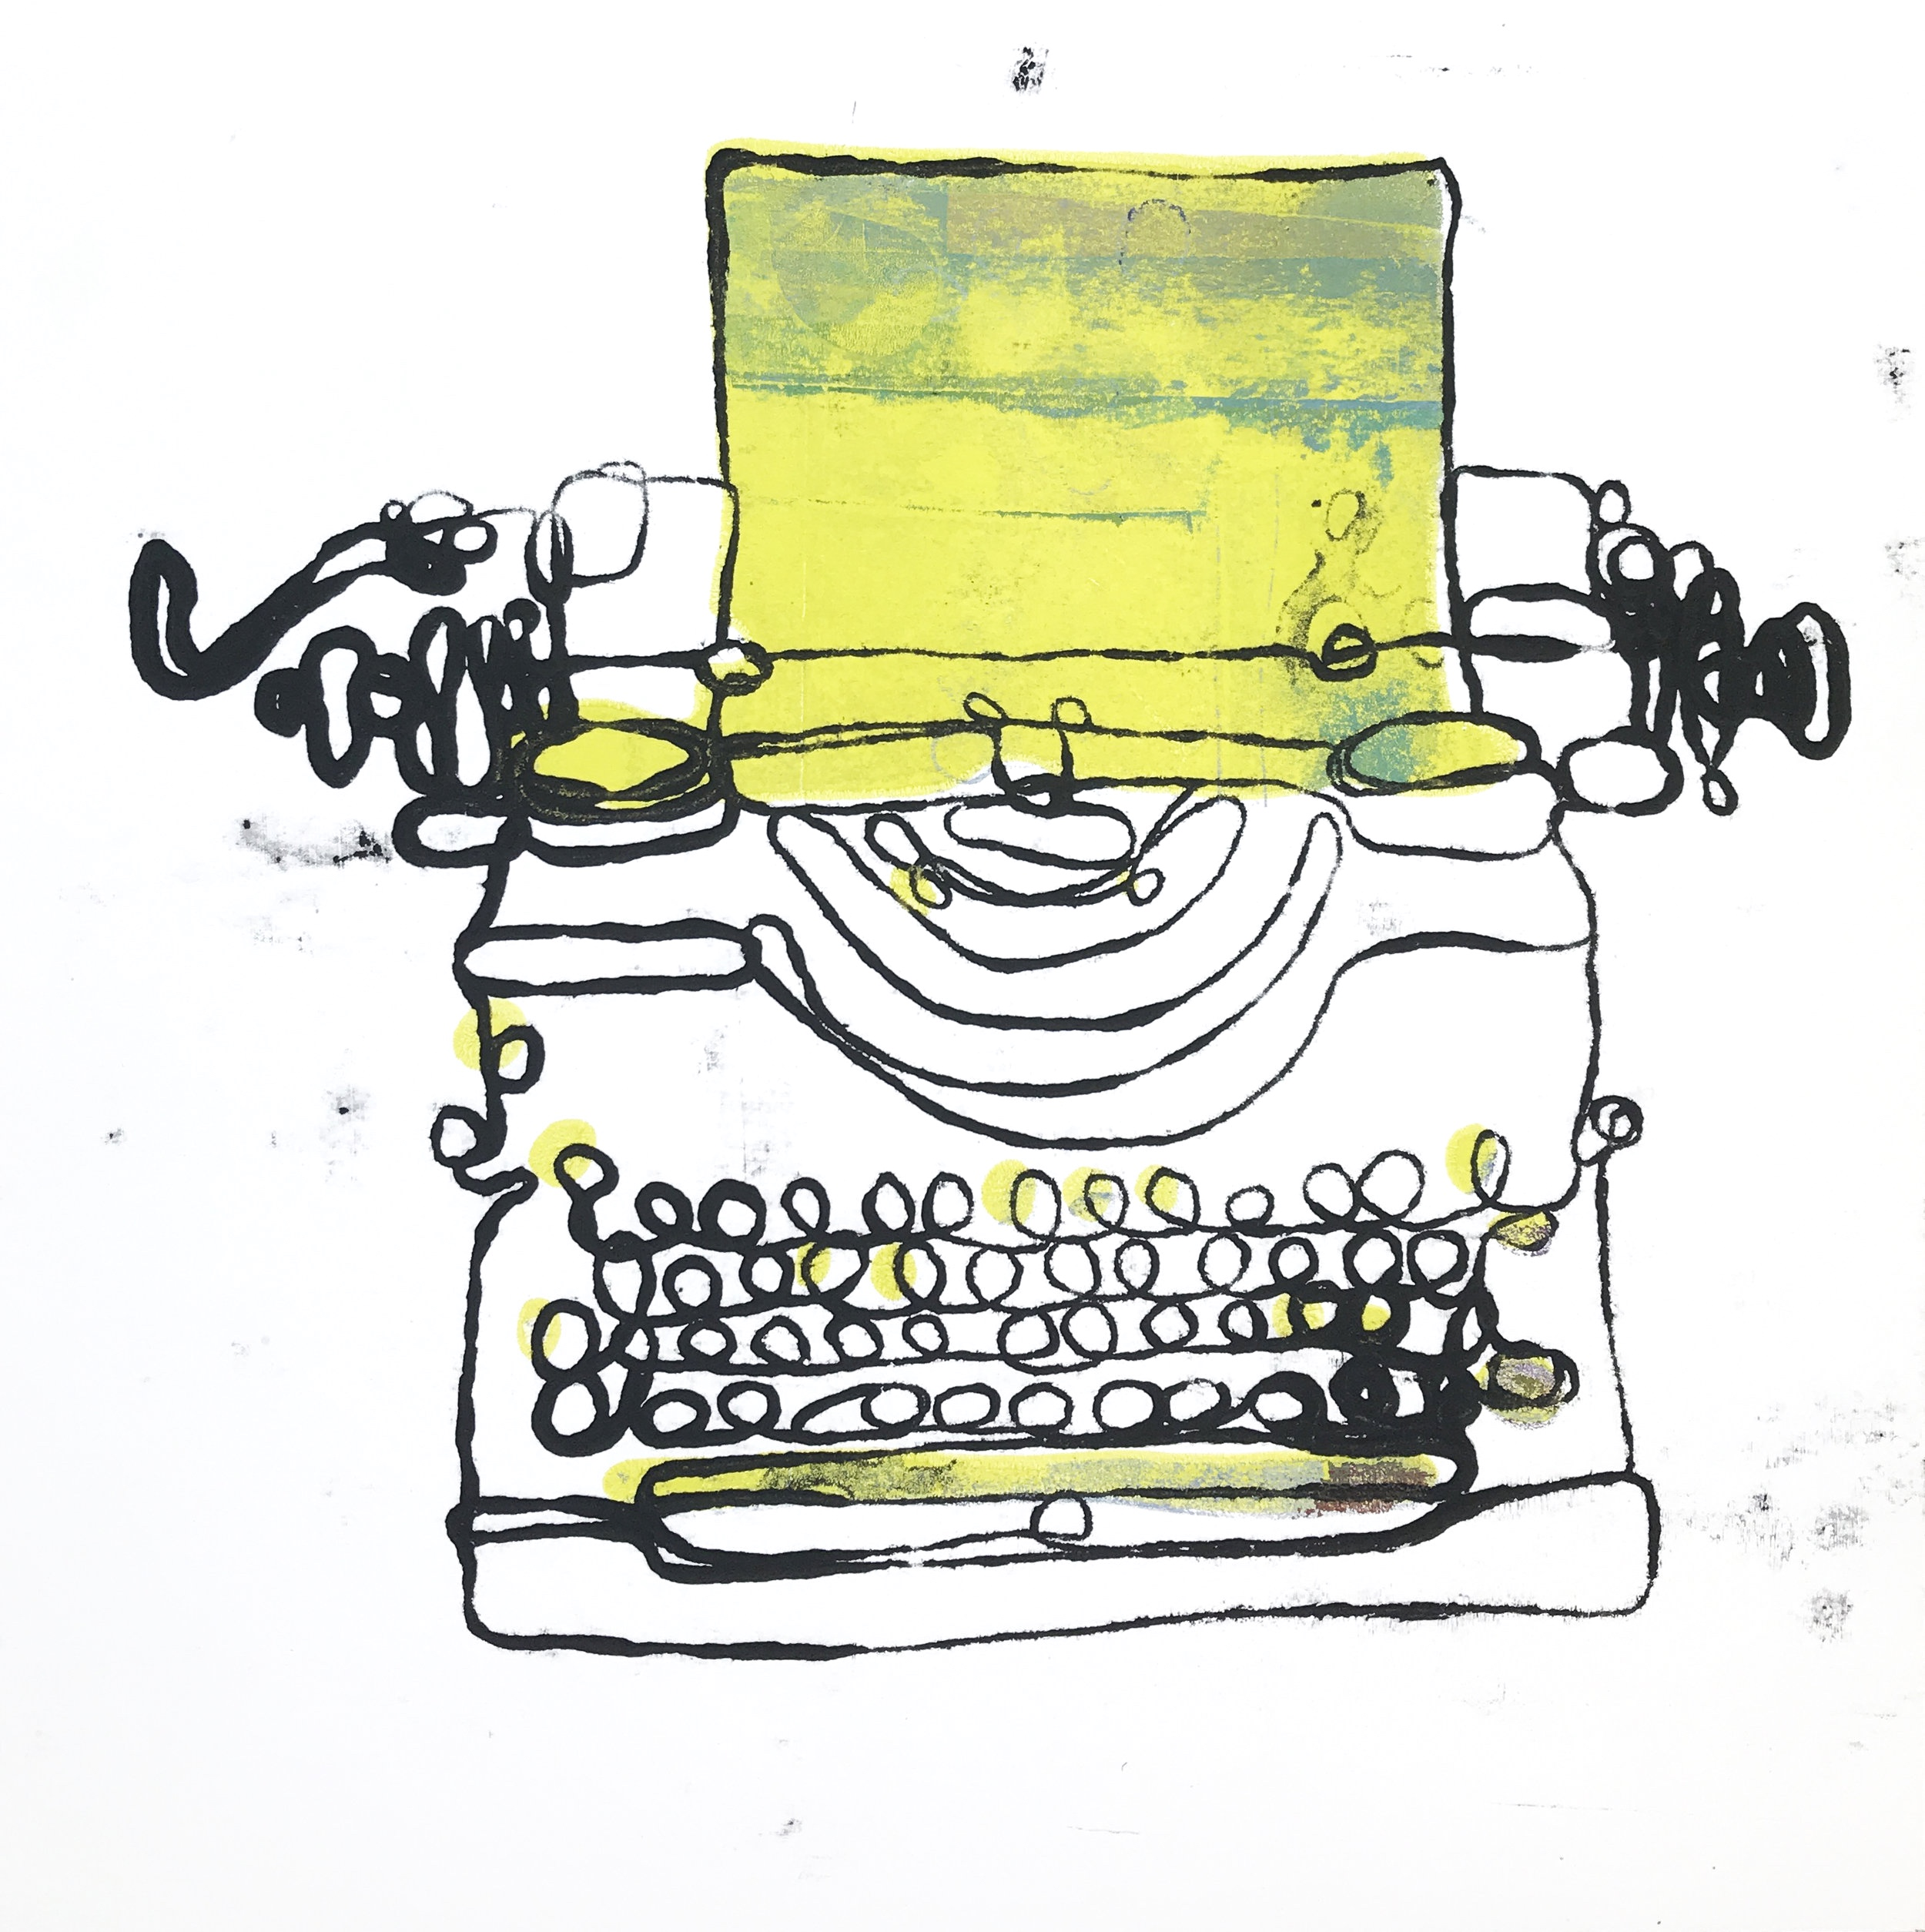 Typewriter Monoprint (number 1) & what happens next in your story?